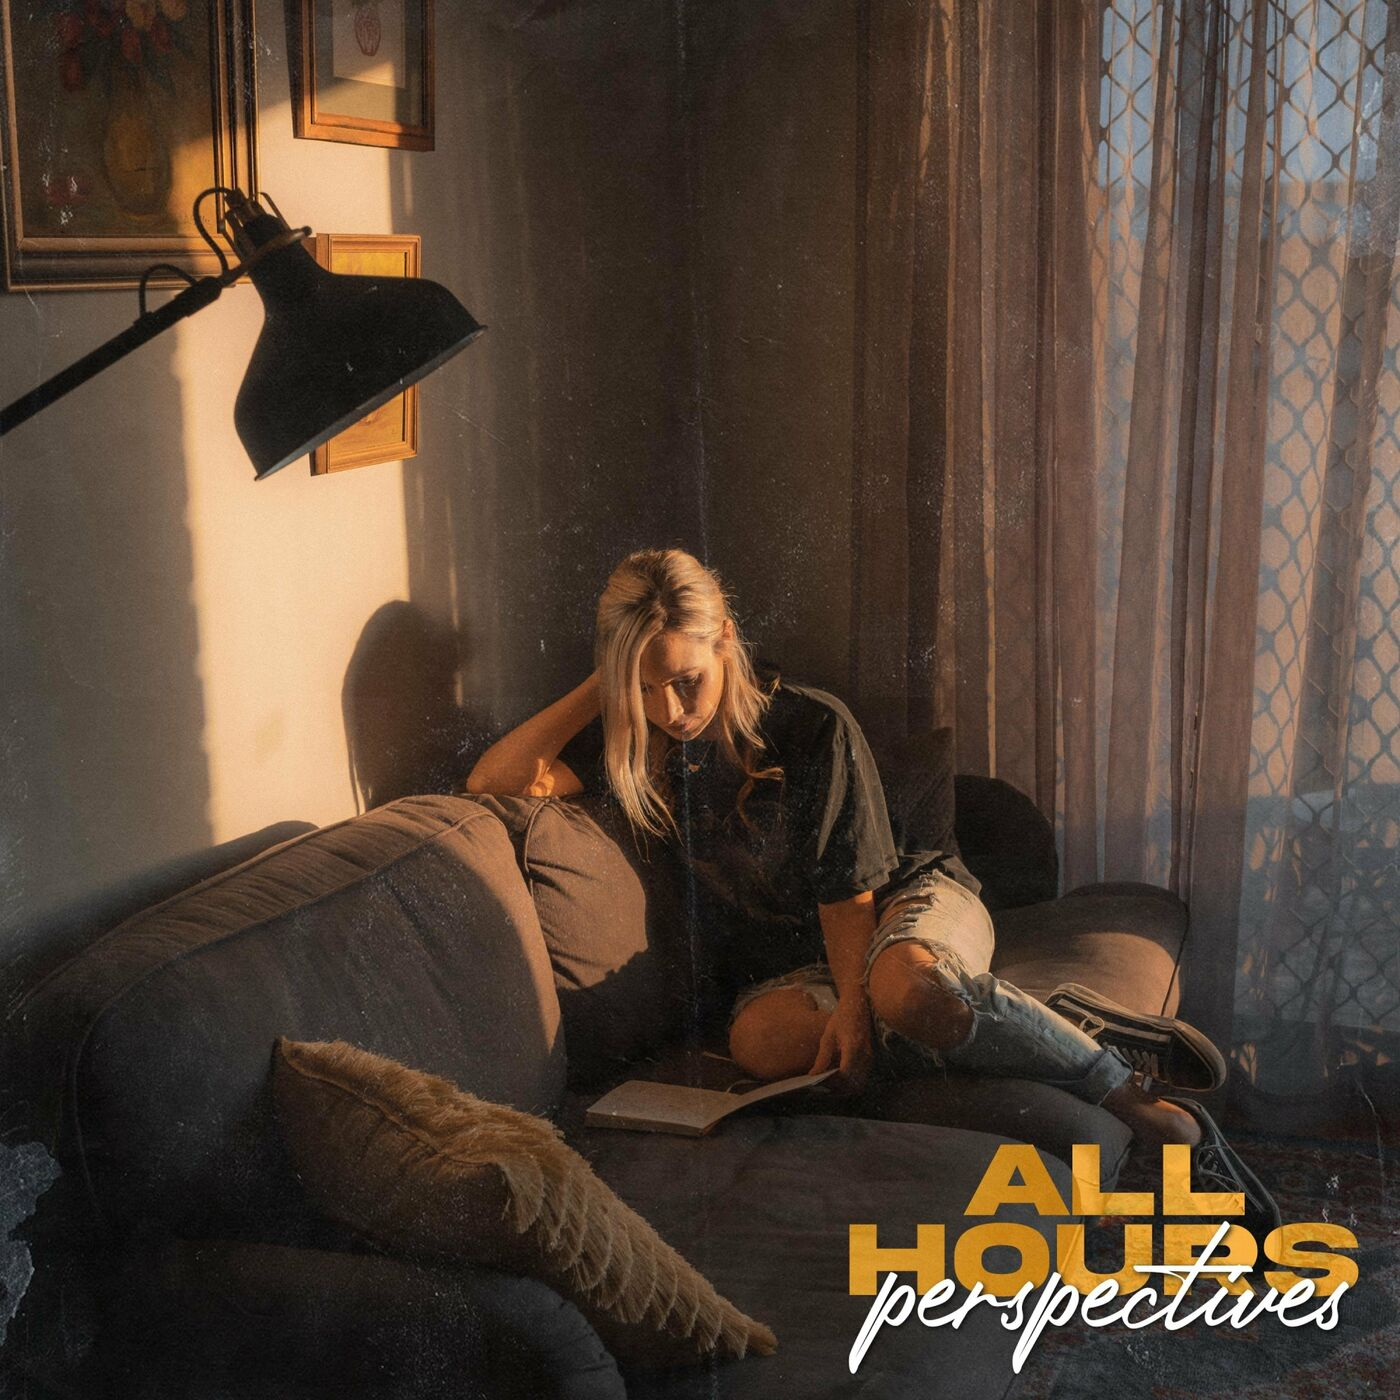 All Hours - Perspectives [EP] (2021)